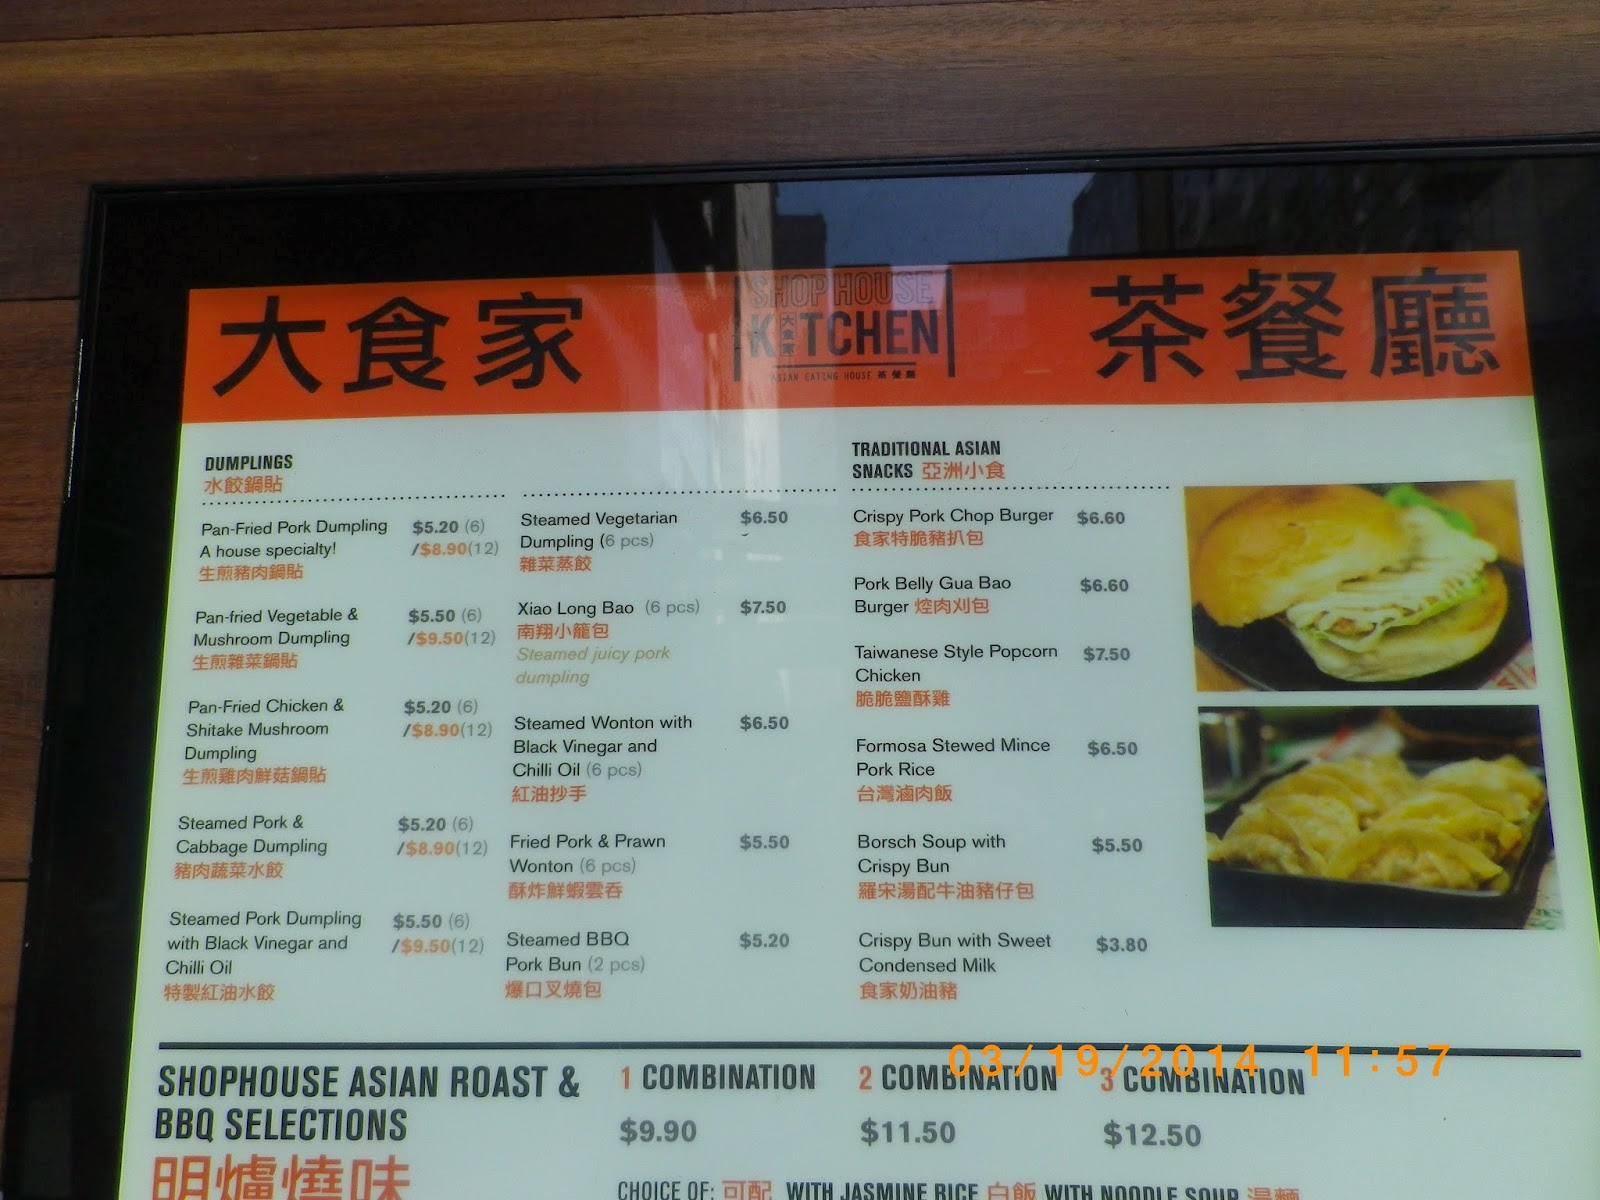 VC Menu: Shophouse Kitchen - Melbourne Queen Victoria VIC